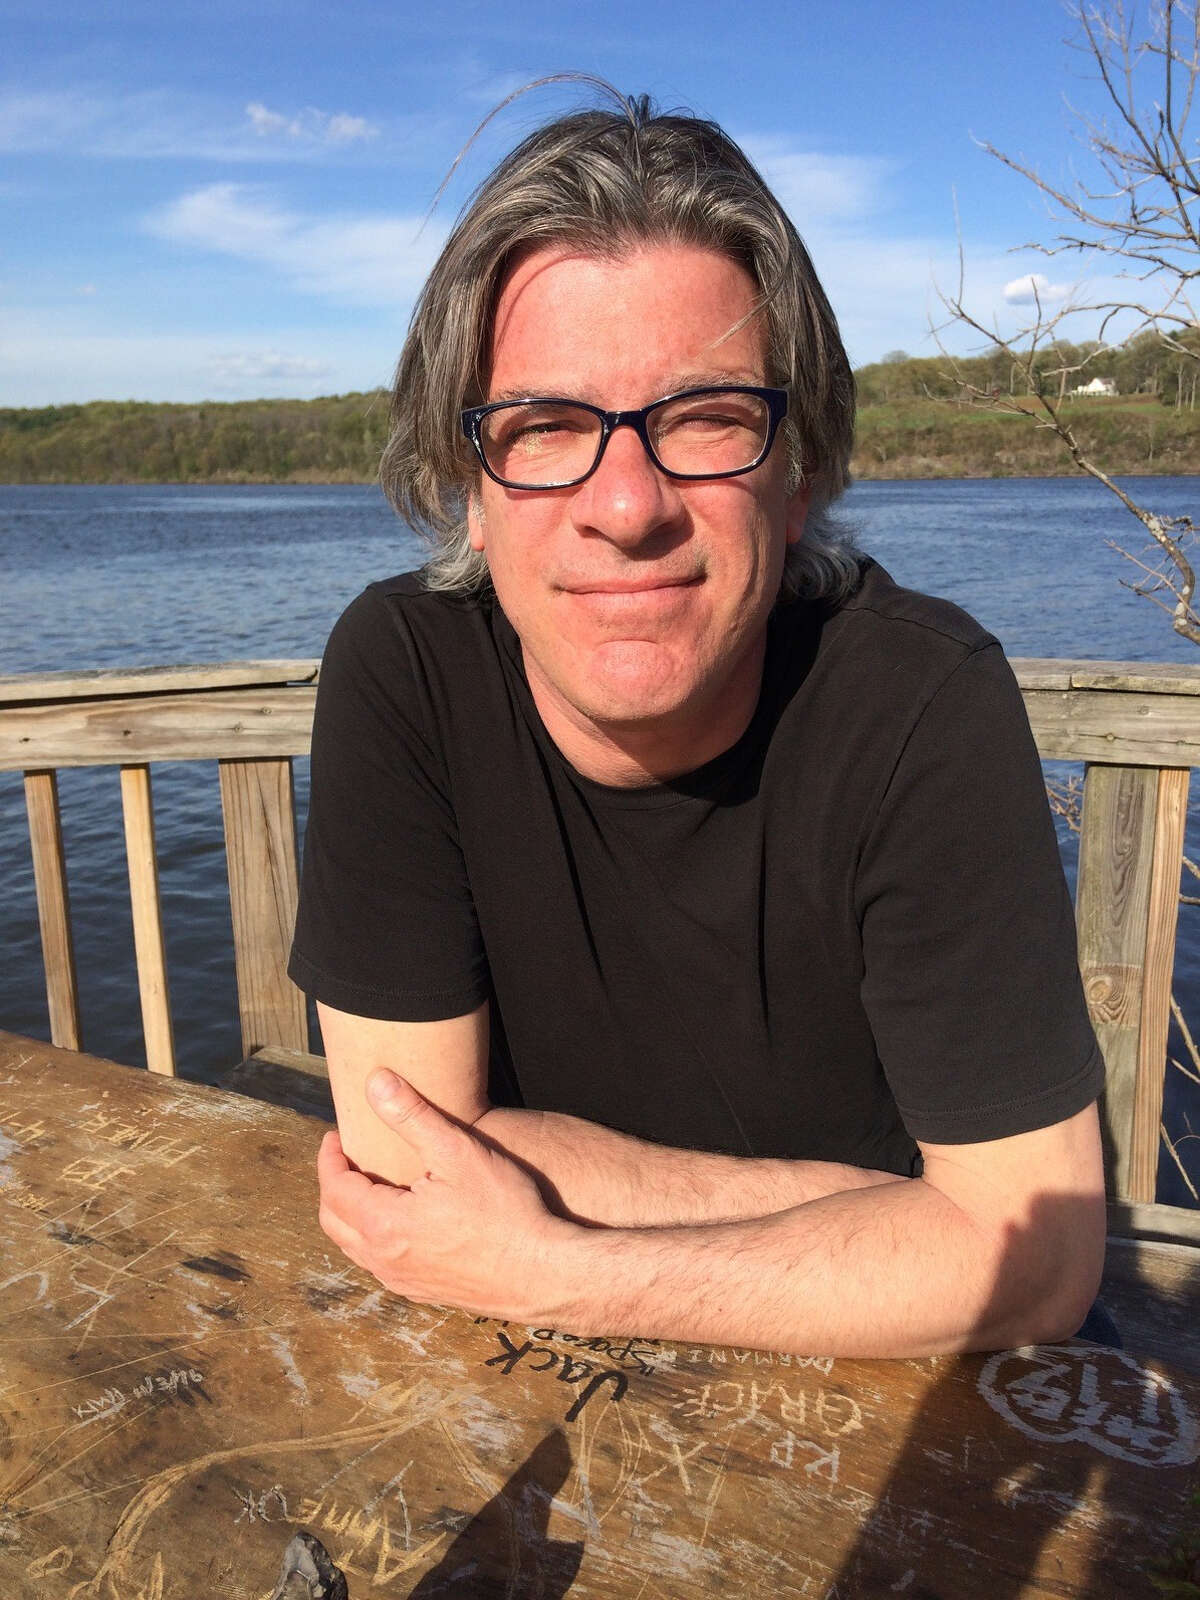 Hudson-based author David McDonald wrote